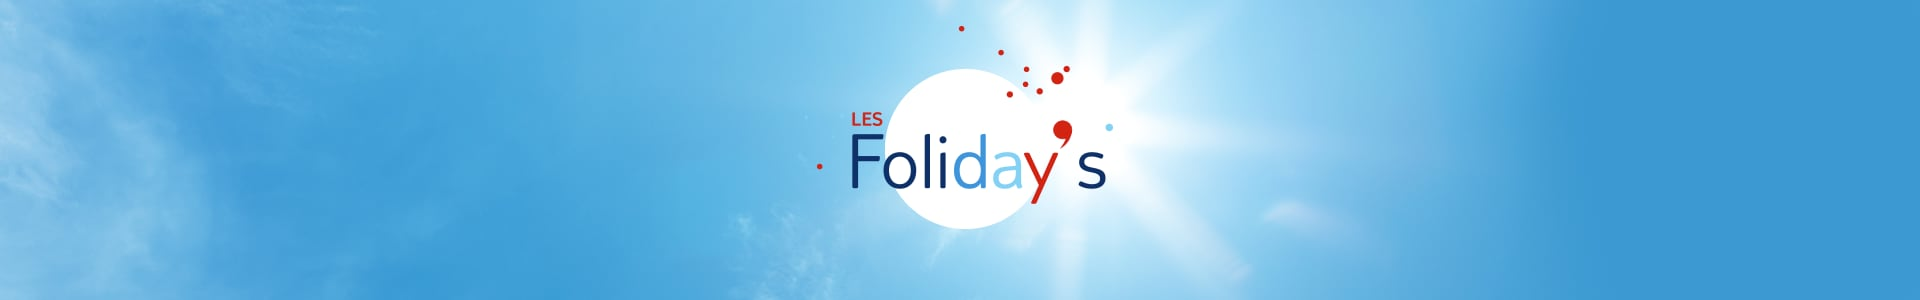 Les Foliday's